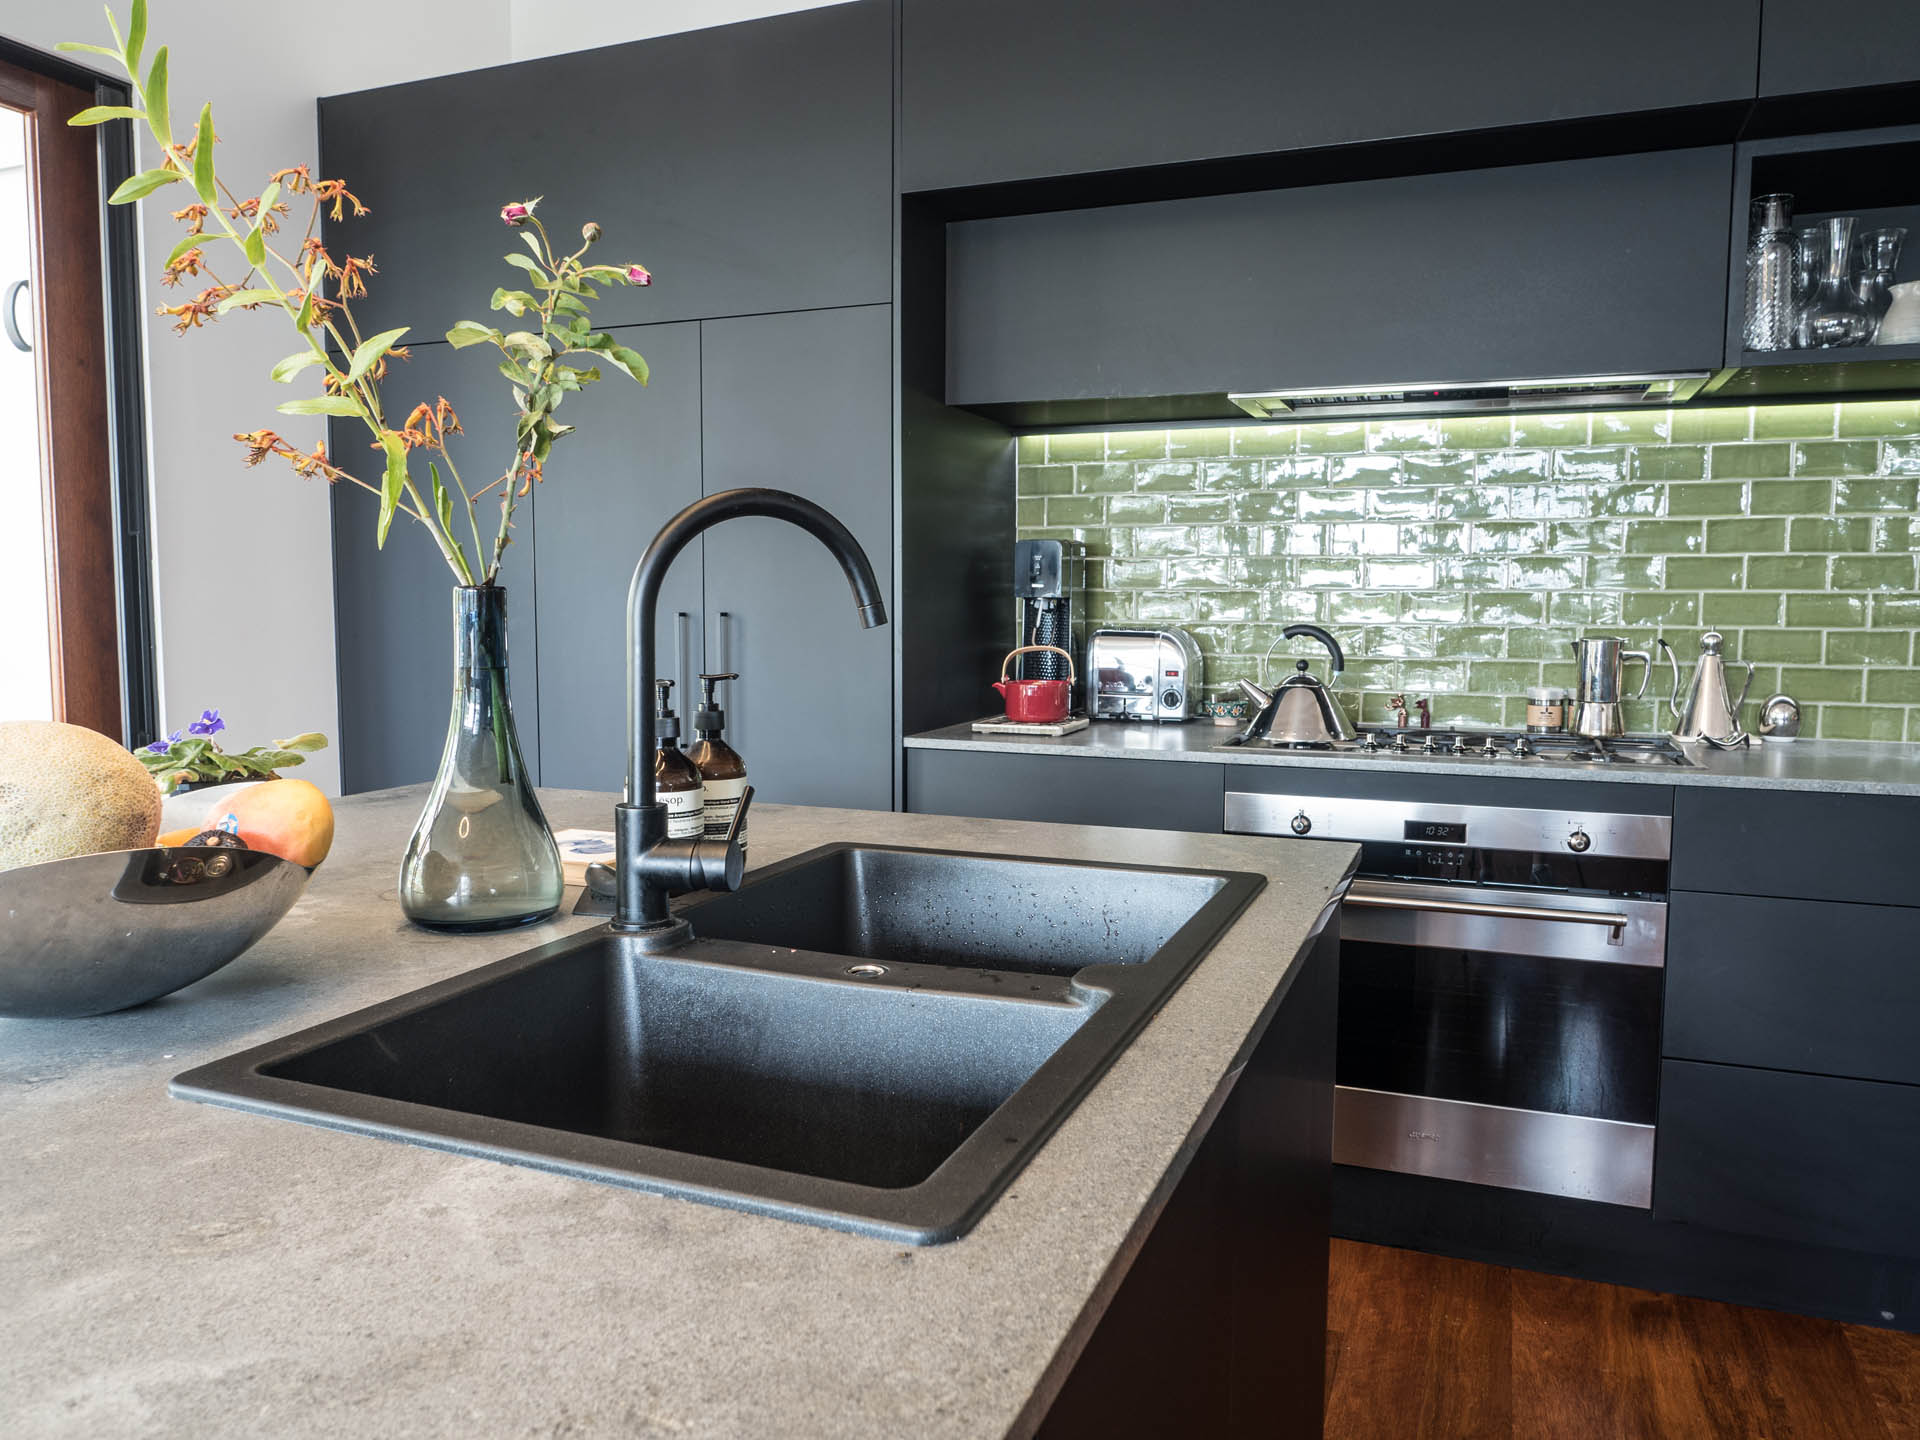 RM Kitchens & Bathrooms - Jamison renovation